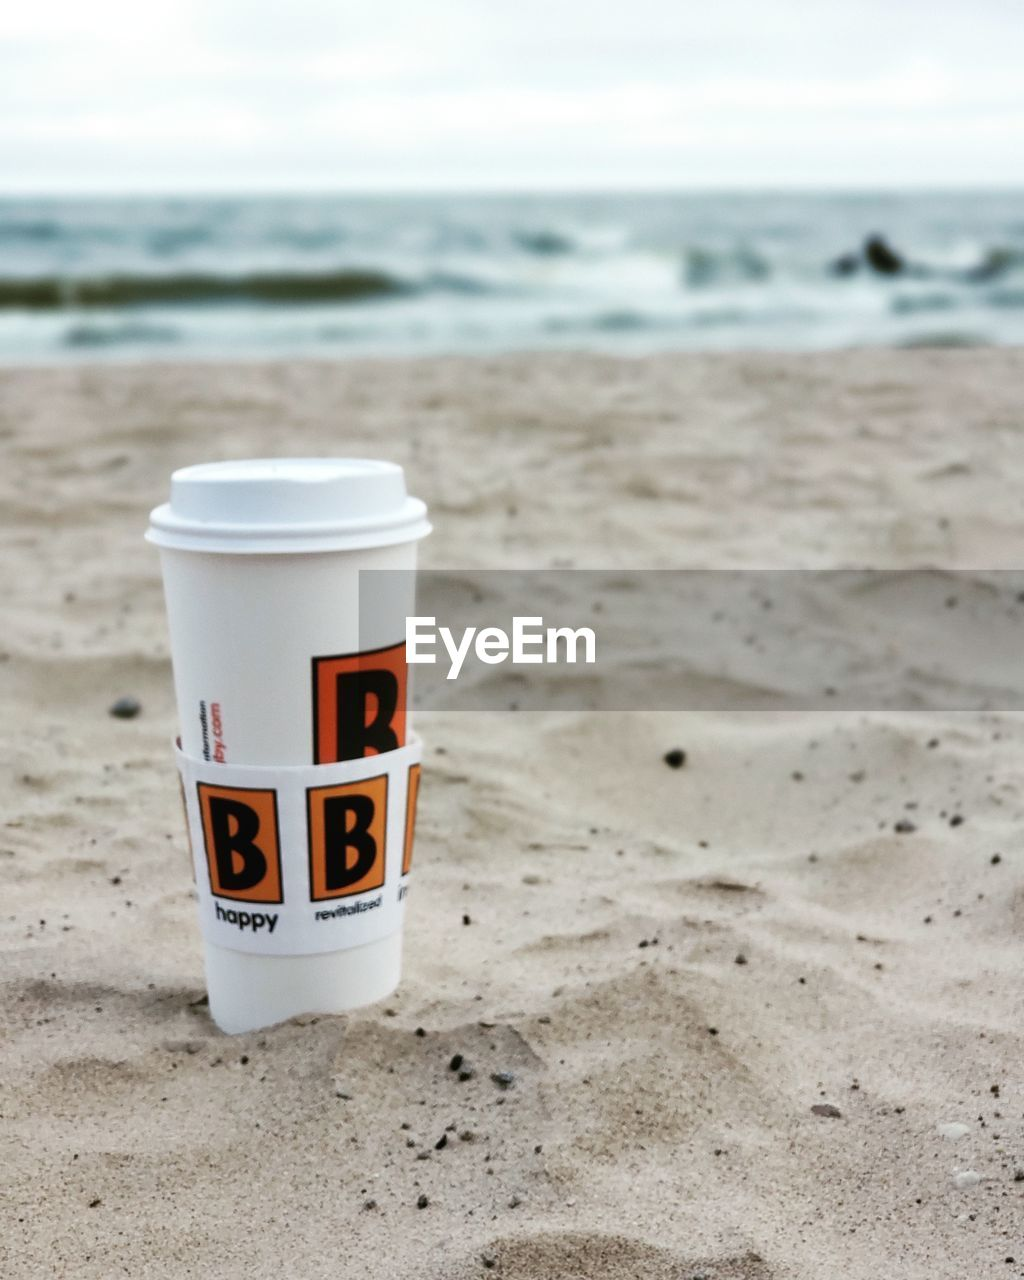 land, beach, sand, sea, water, focus on foreground, cup, horizon, nature, no people, horizon over water, sky, drink, beauty in nature, day, mug, scenics - nature, outdoors, disposable